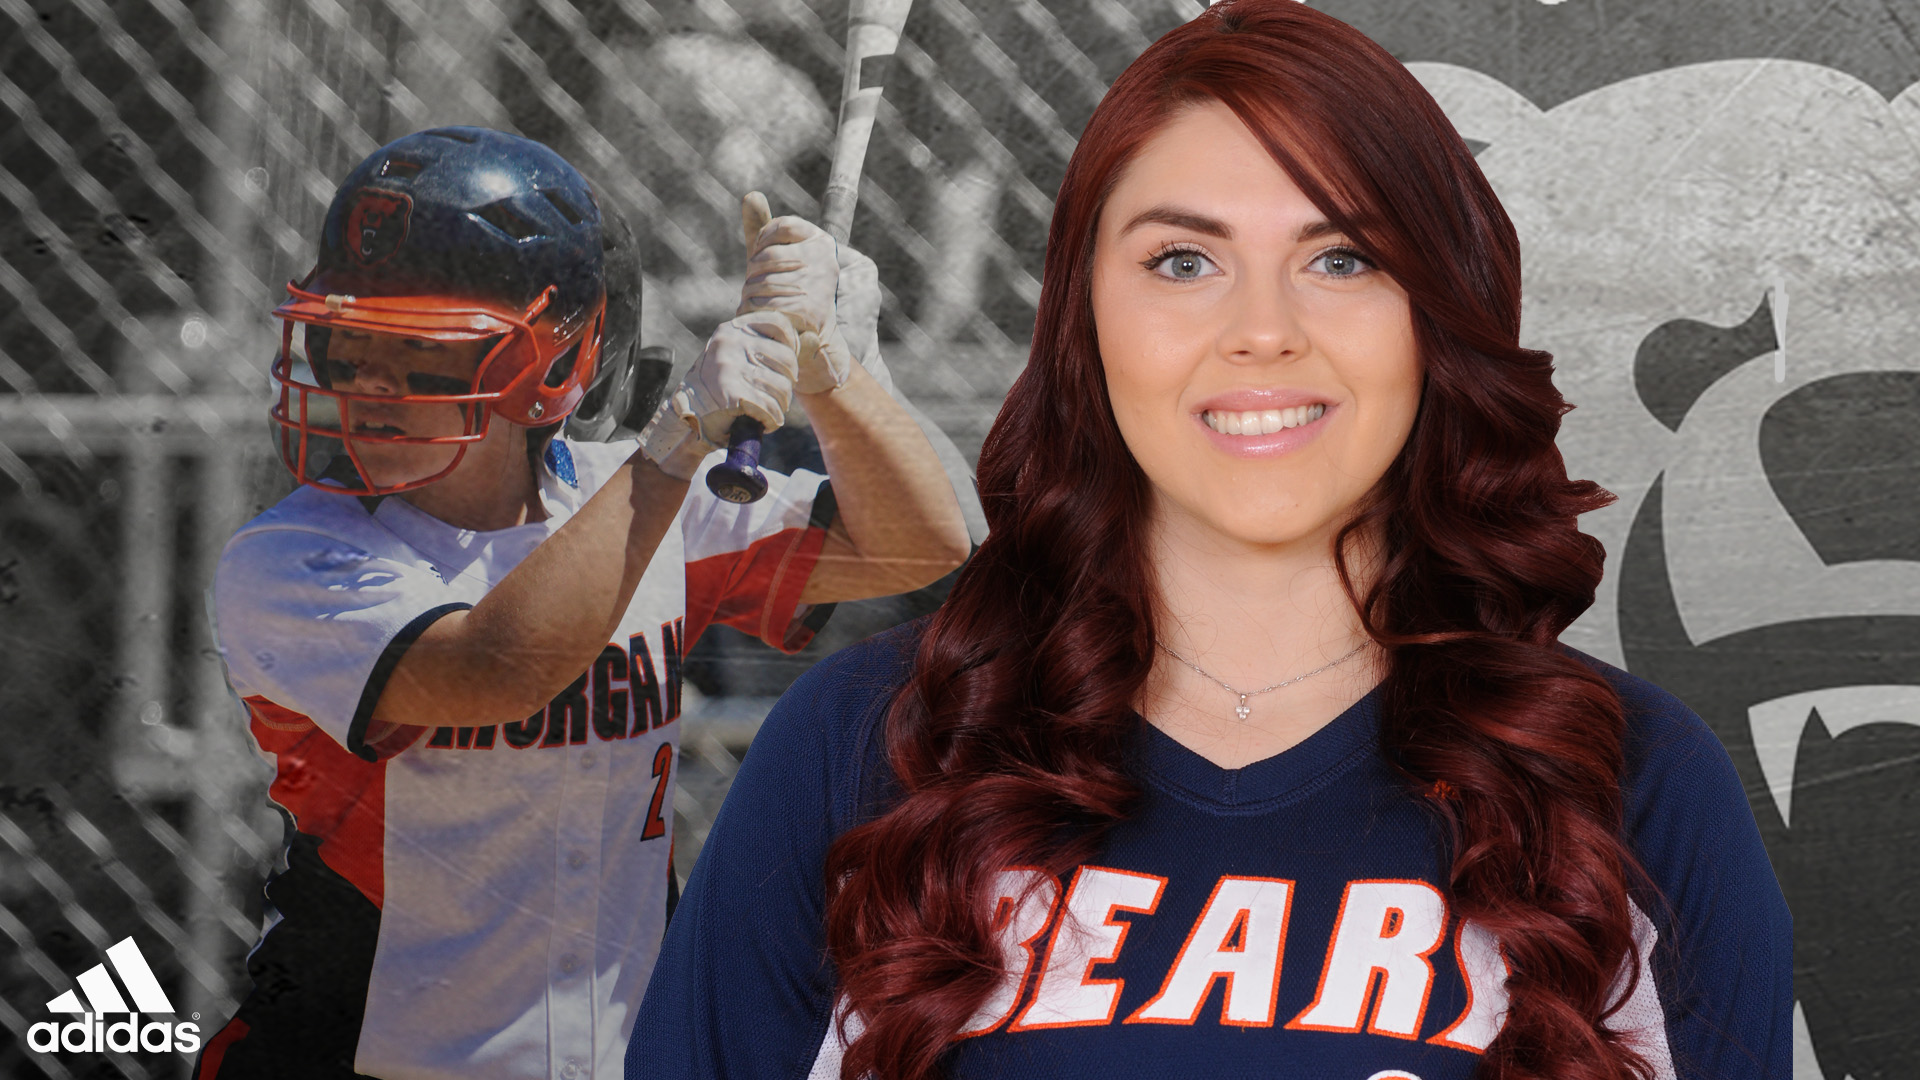 softball morgan state Find a real-time, up-to-date 2018 morgan state softball roster at hero sports, including jersey numbers, player positions and class data filter the morgan state roster by pitchers, catchers.